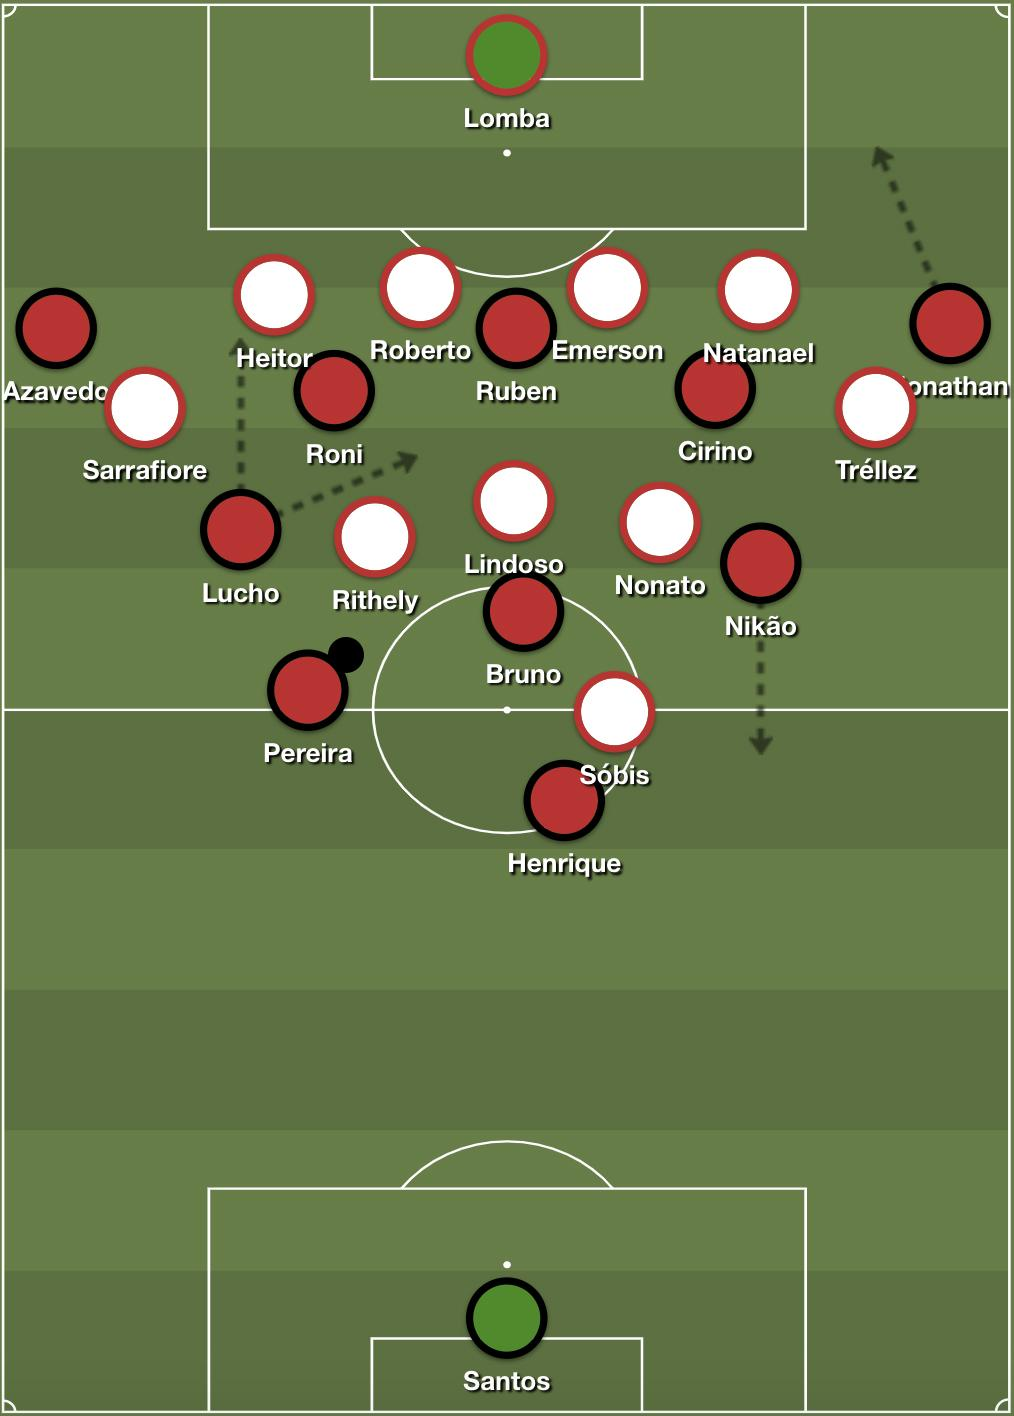 Paranaense's 4-2-3-1 structure with the wide threat of the fullbacks.